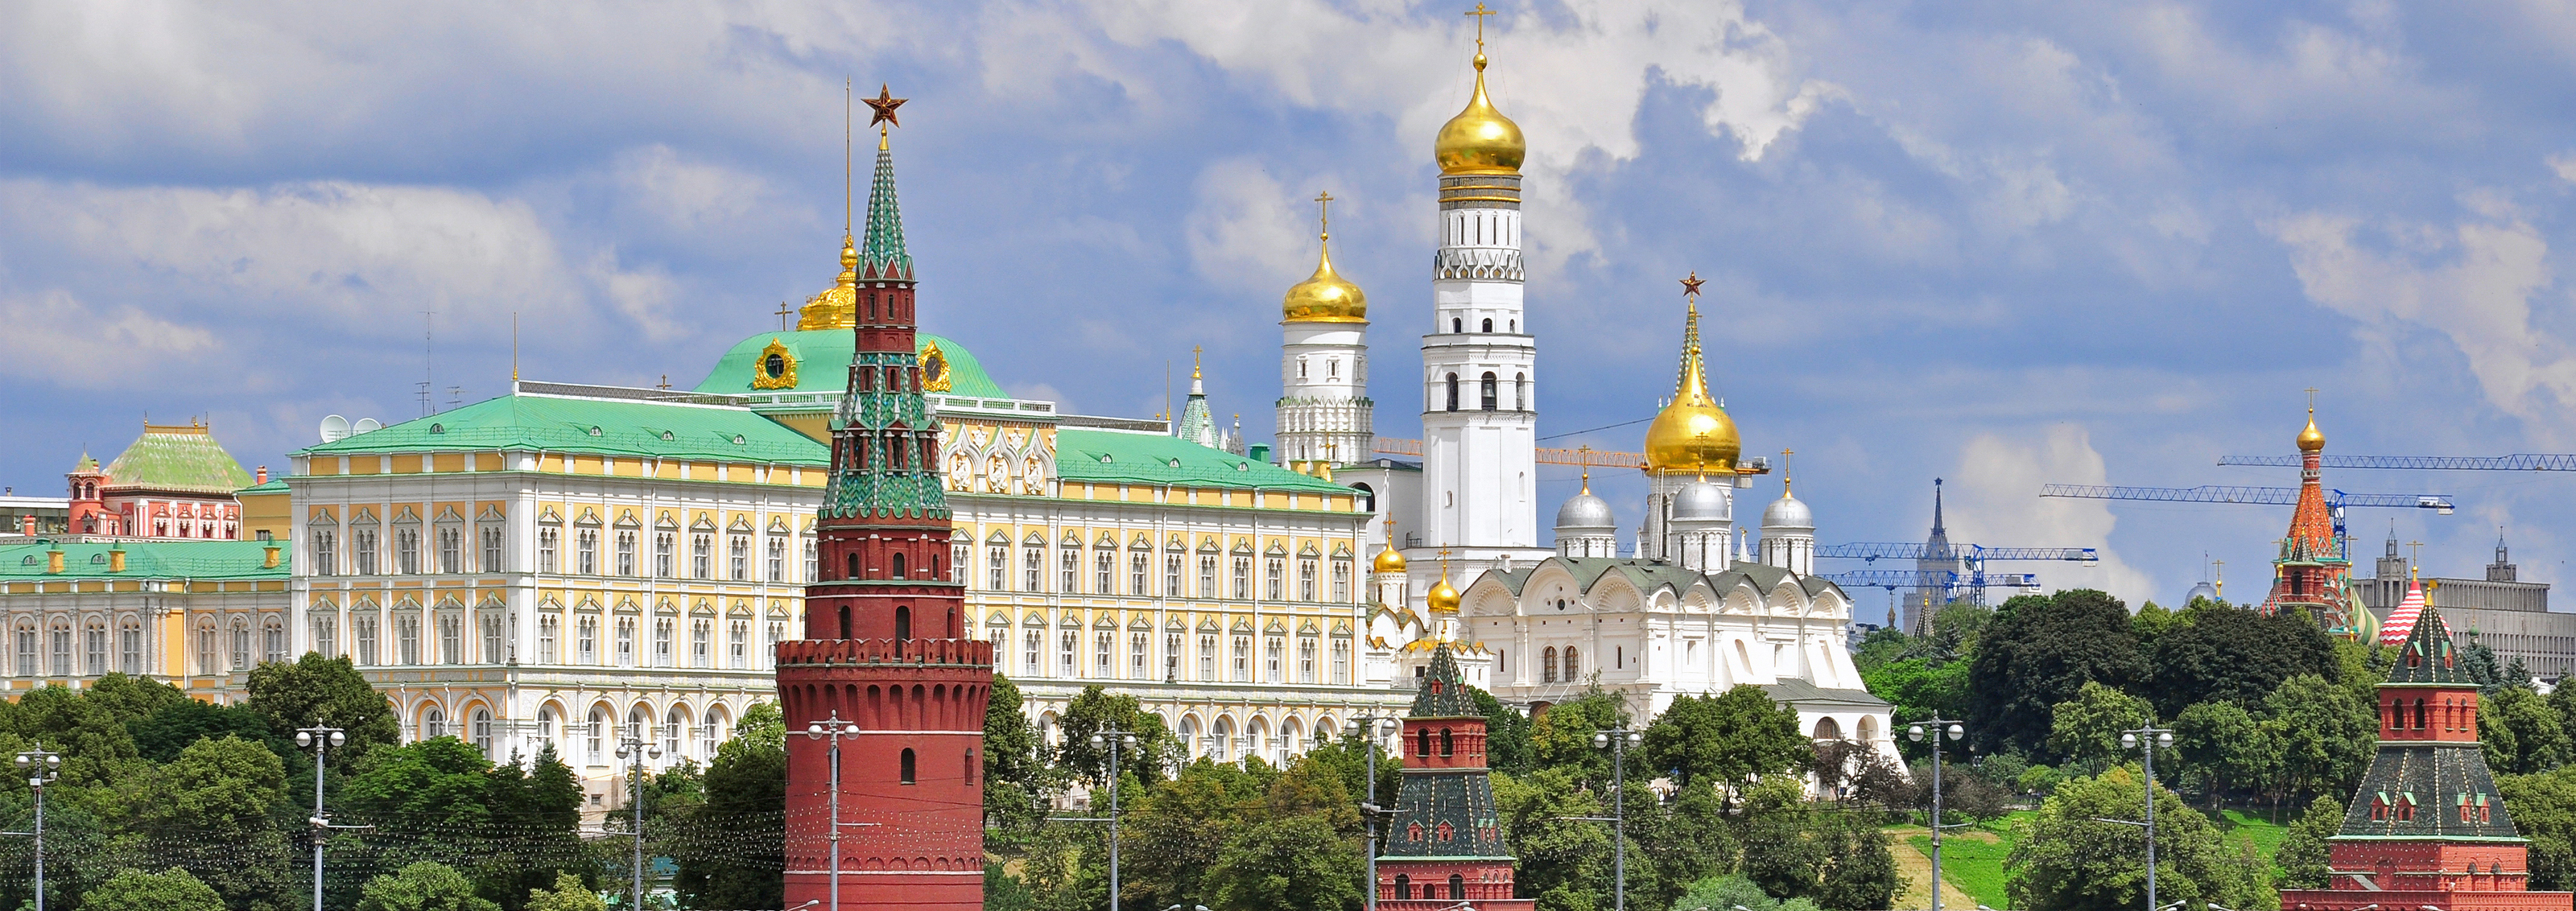 Russia: Last Journey of the Tsars